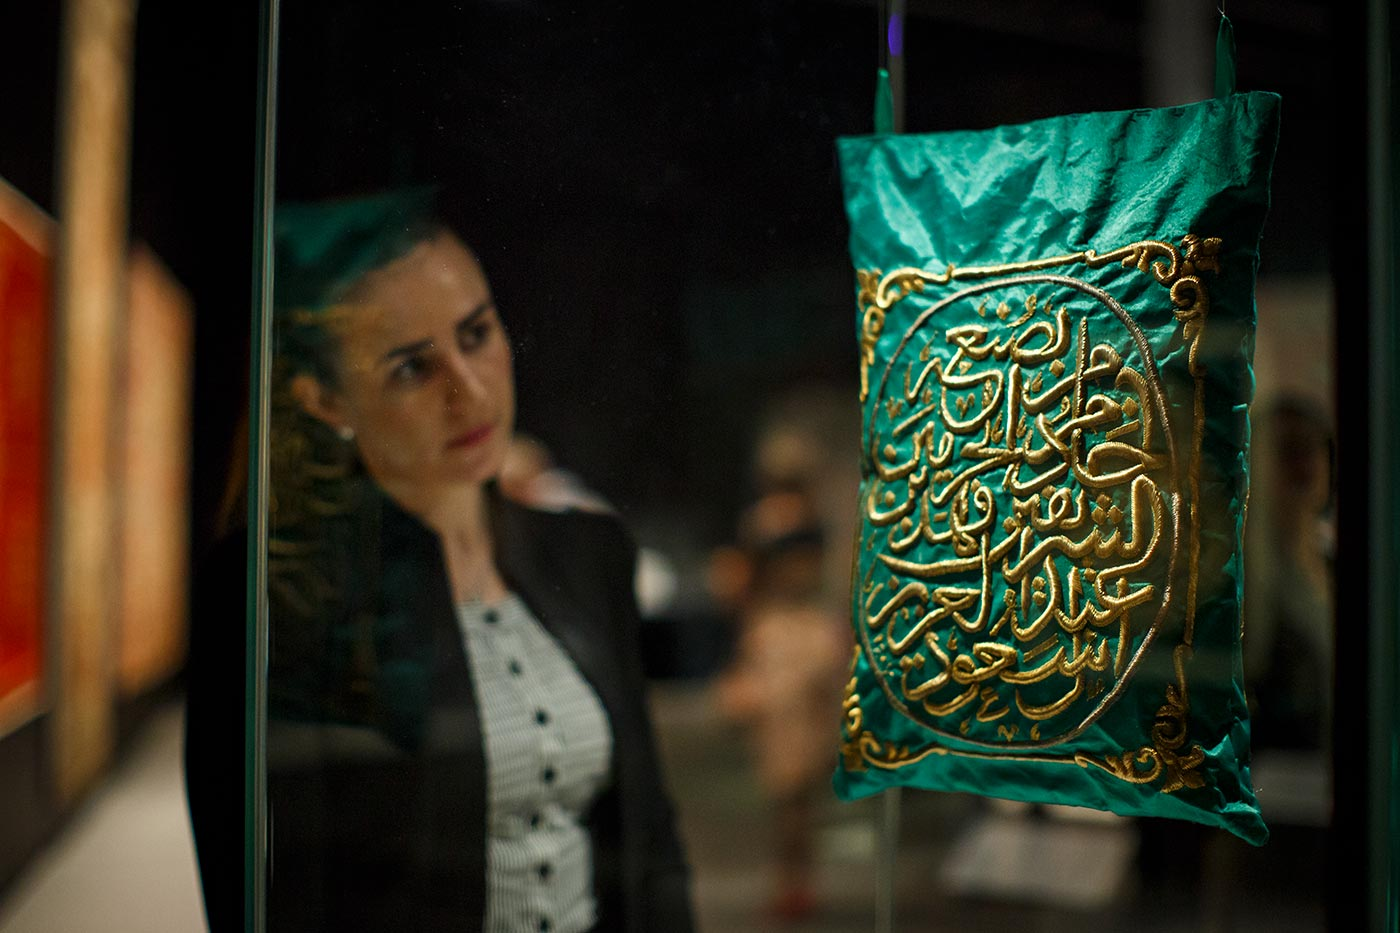 A woman looks at a green and gold object resembling a bag which hangs suspended.